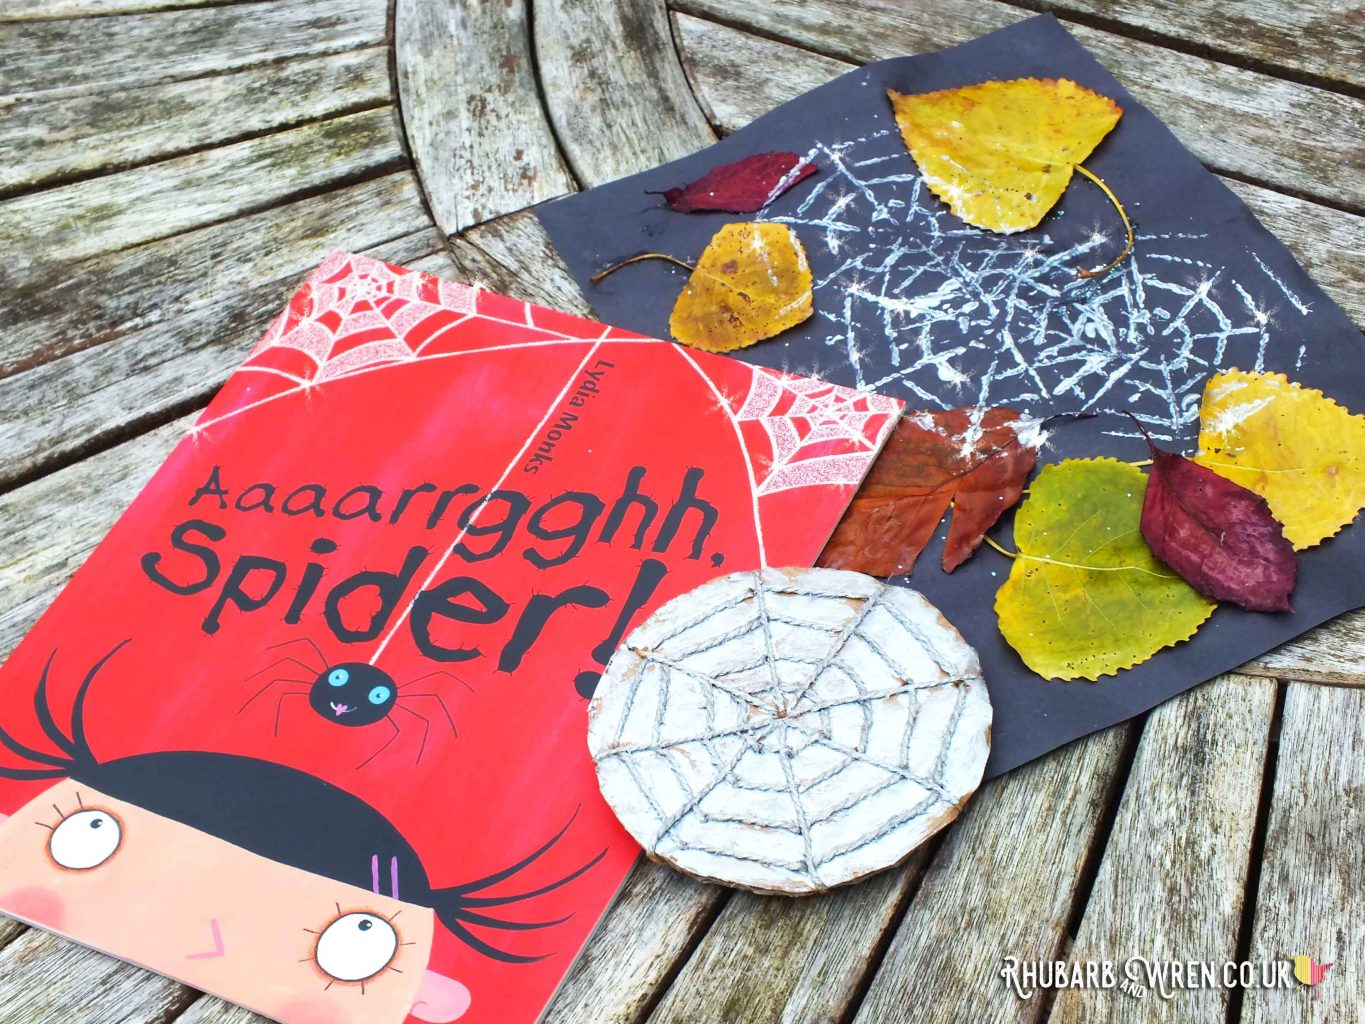 Book - Aaaarrgghh, Spider! lying on paper stamped with silver spiderwebs, plus cardboard spiderweb stamper.